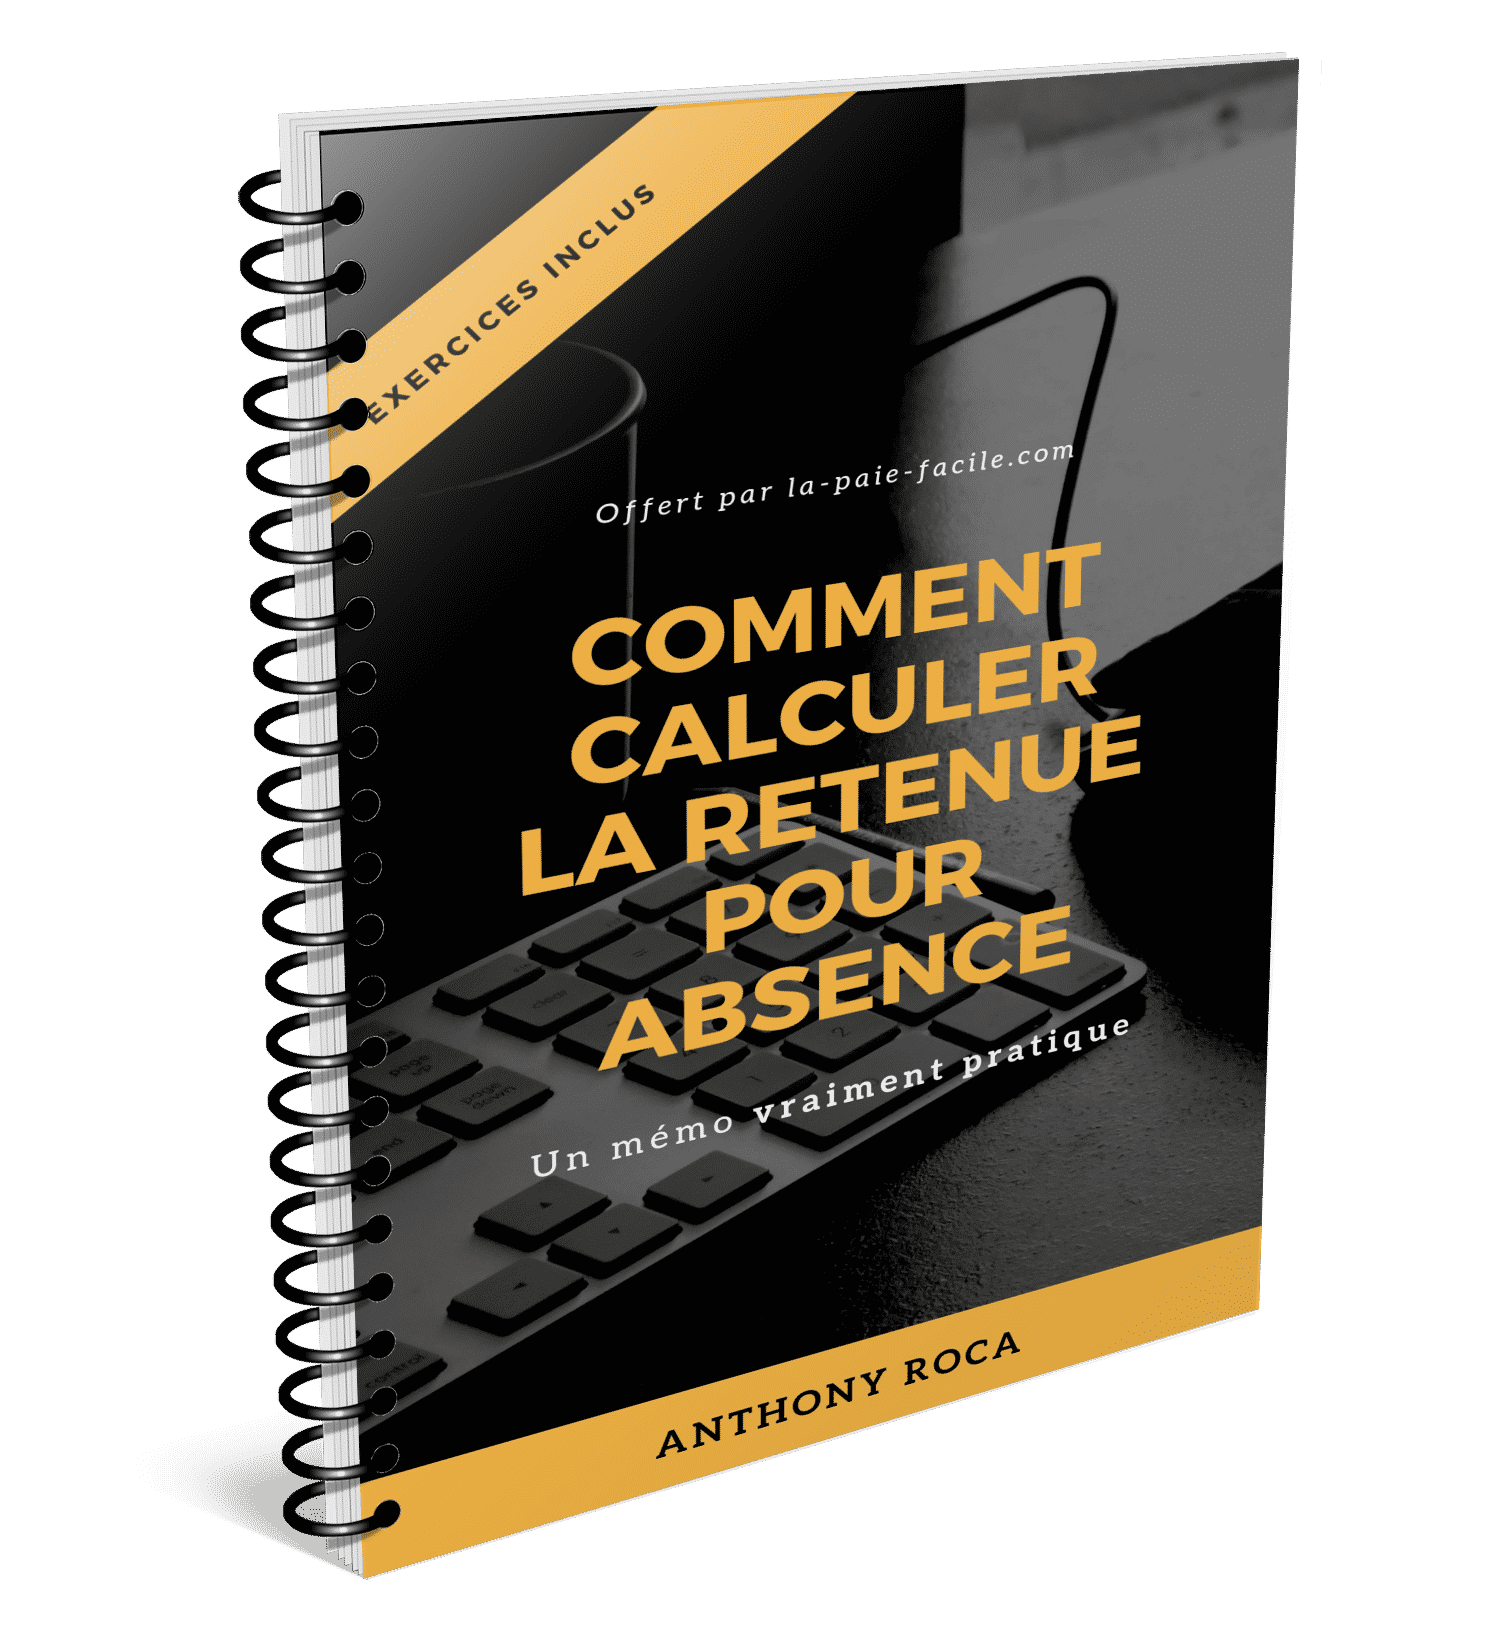 Calculer La Retenue Pour Absence En Paie La Paie Facile